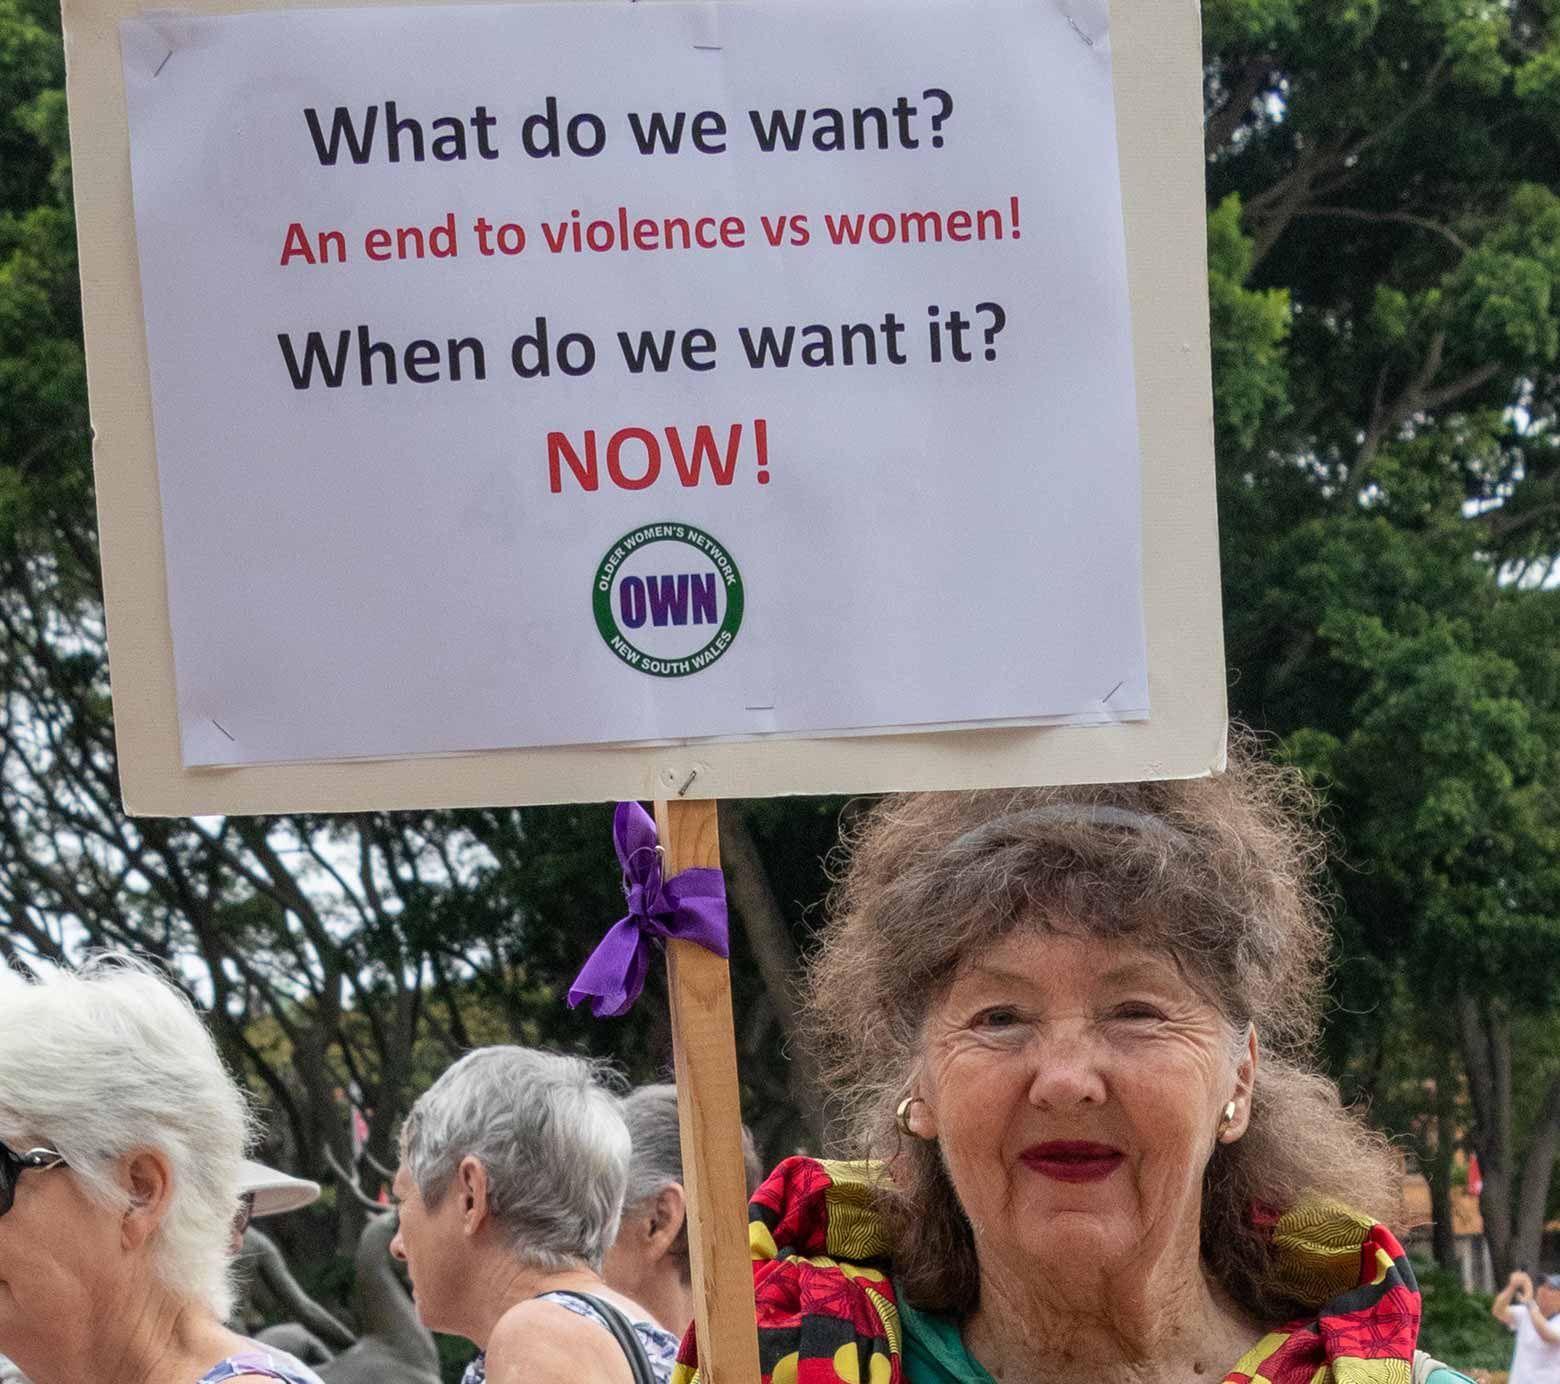 """2002 - A woman holding a placard, """"What do we want? An end to violence vs women! When do we want it? NOW!"""""""